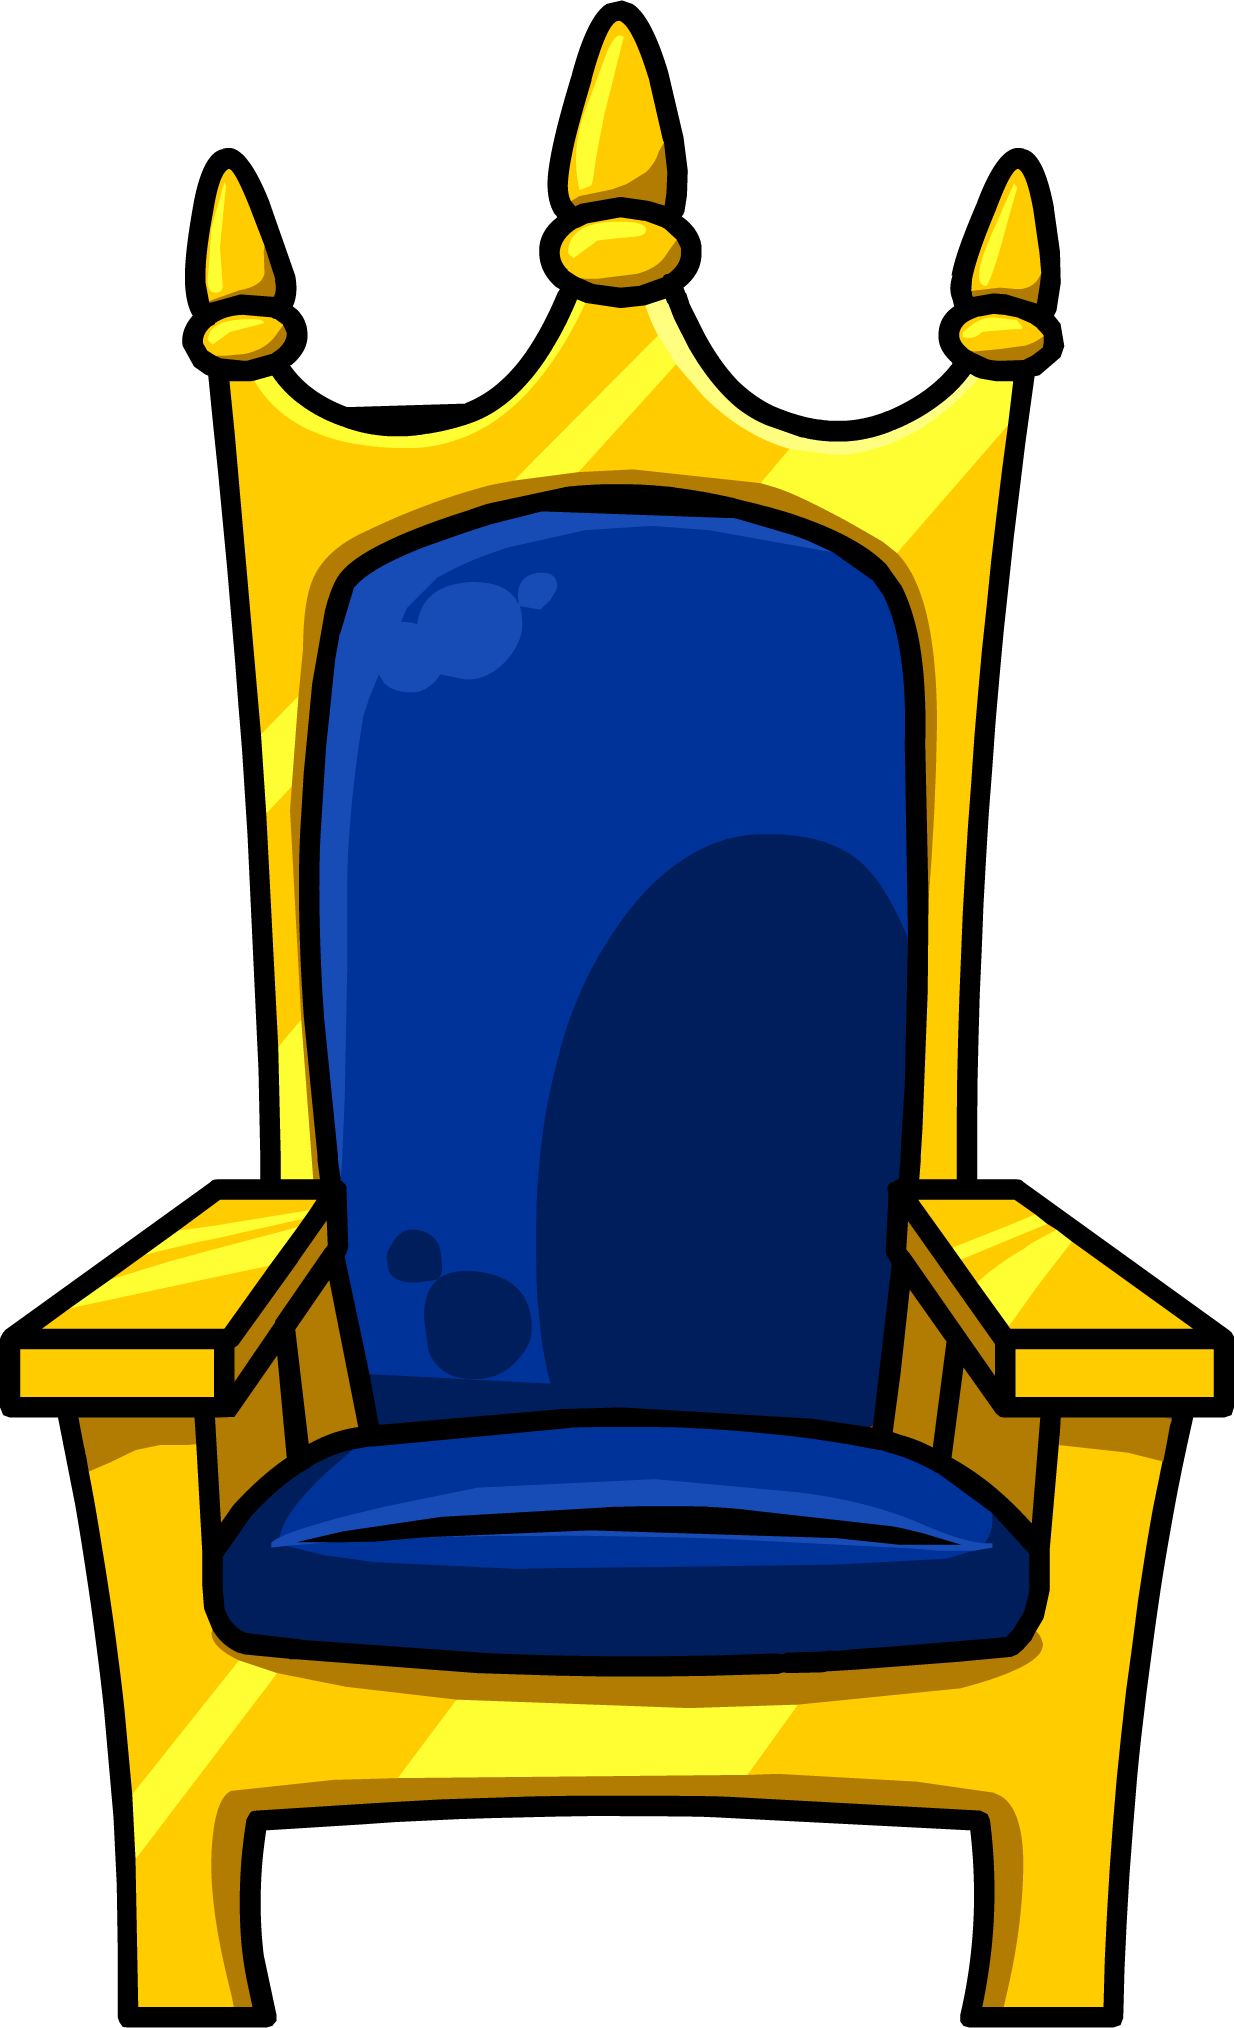 Throne images clipart graphic library library Throne Cliparts | Free download best Throne Cliparts on ... graphic library library